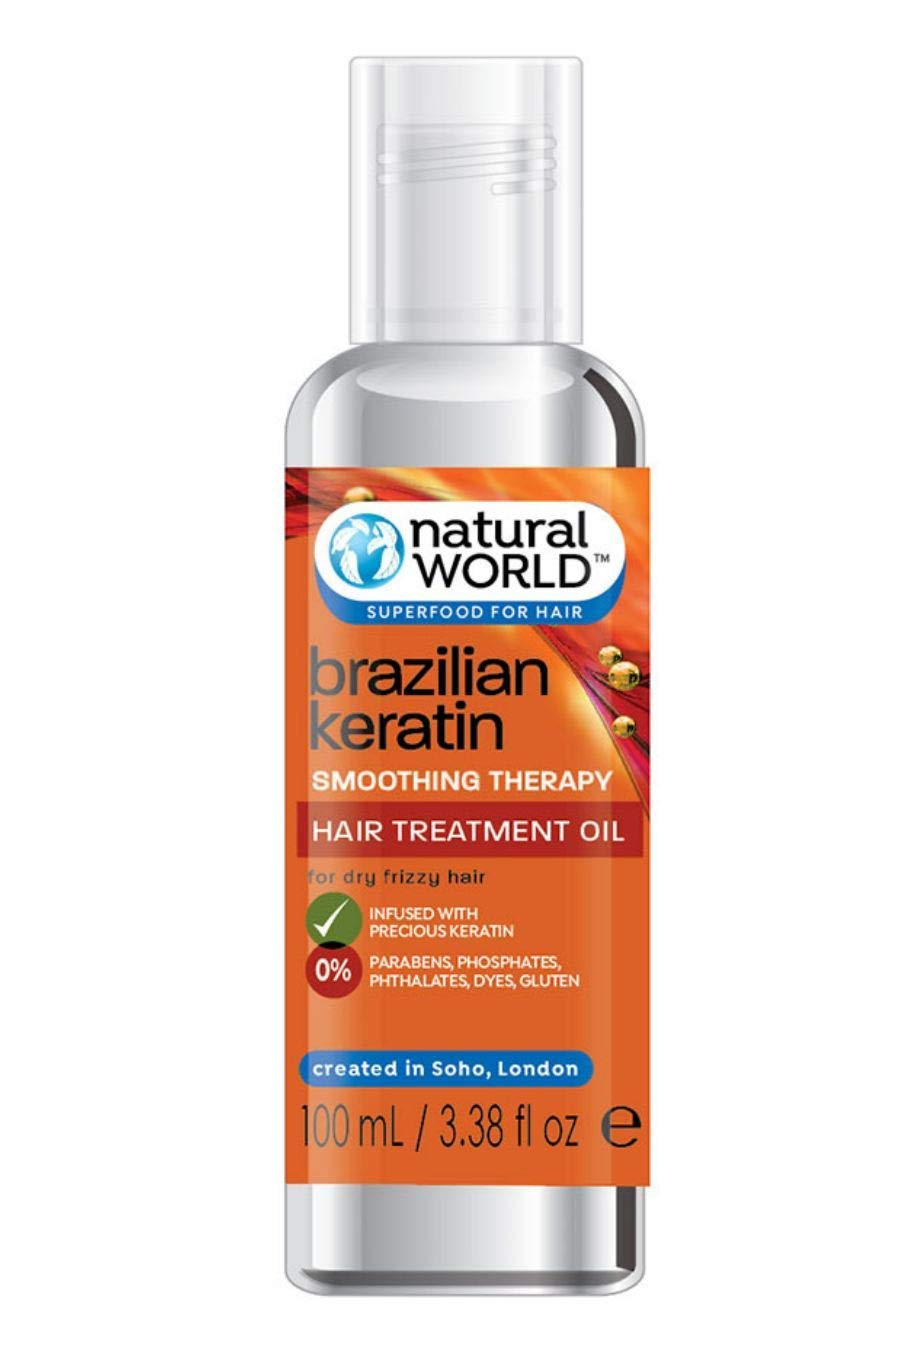 Natural World Brazilian Keratin Smoothing Therapy Hair Treatment Oil 100ml product image